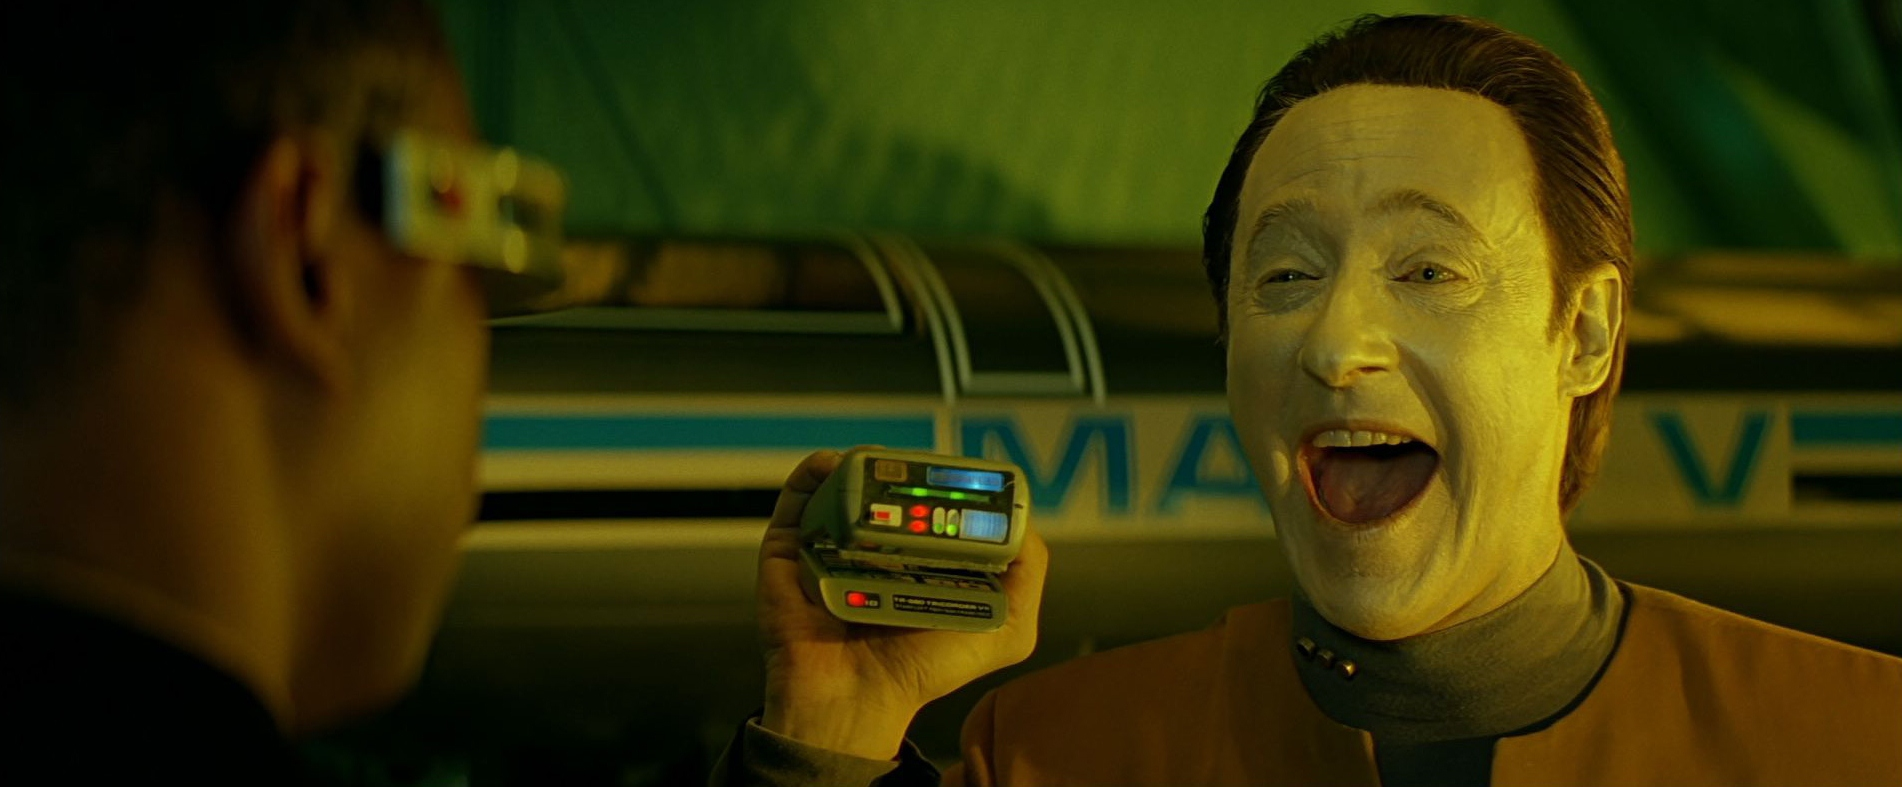 We've got tablets and we really don't know how to use them...just like Data and Mr. Tricorder. Seriously.